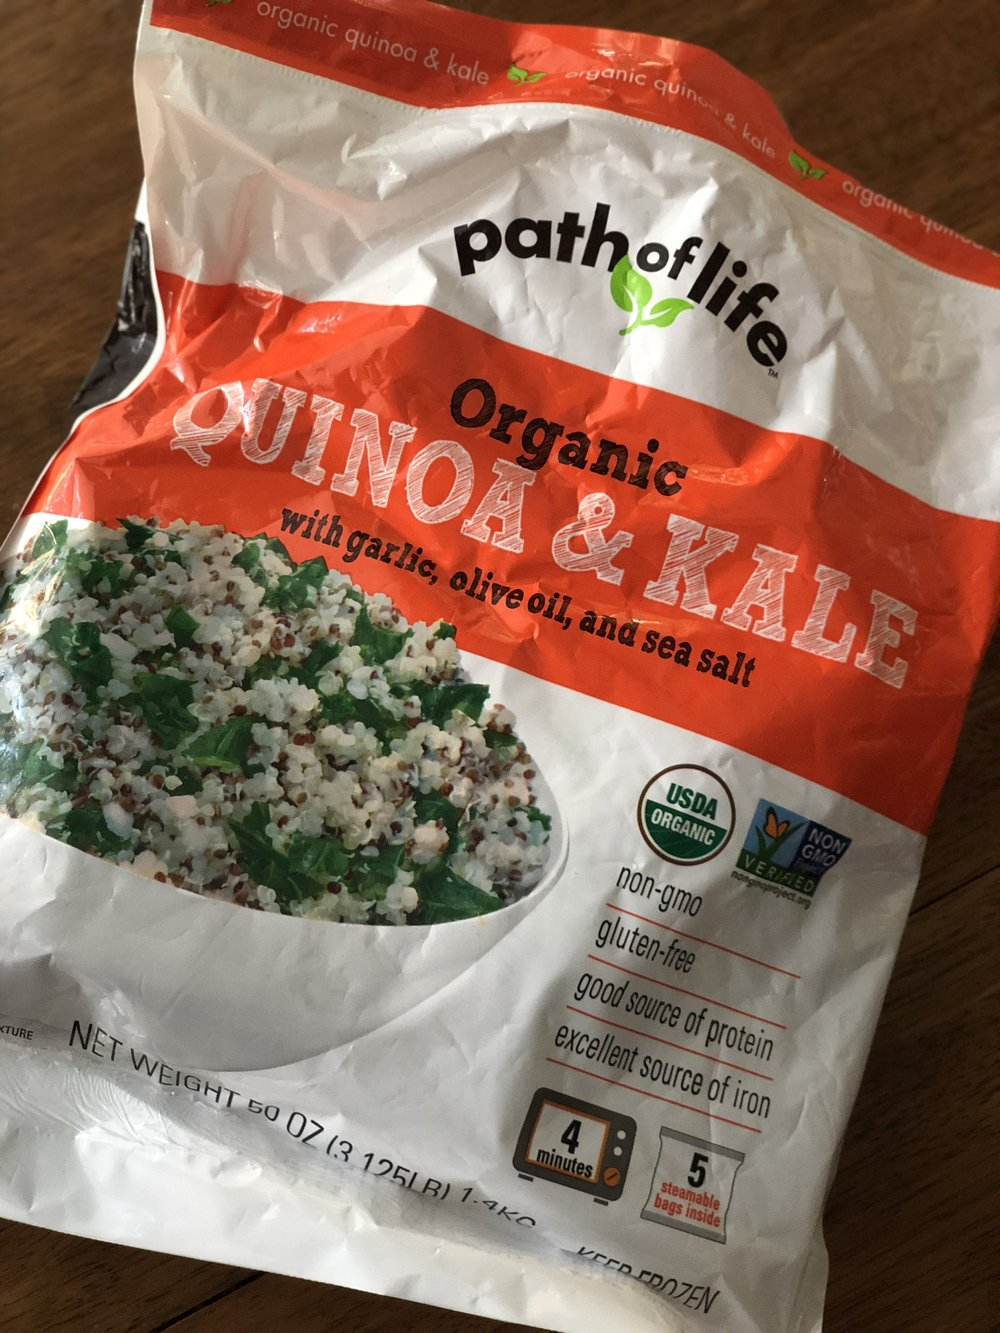 - Quinoa Time saving Idea: Path of Life Organic Quinoa & Kale from CostcoGluten Free & in 5 steam bags!